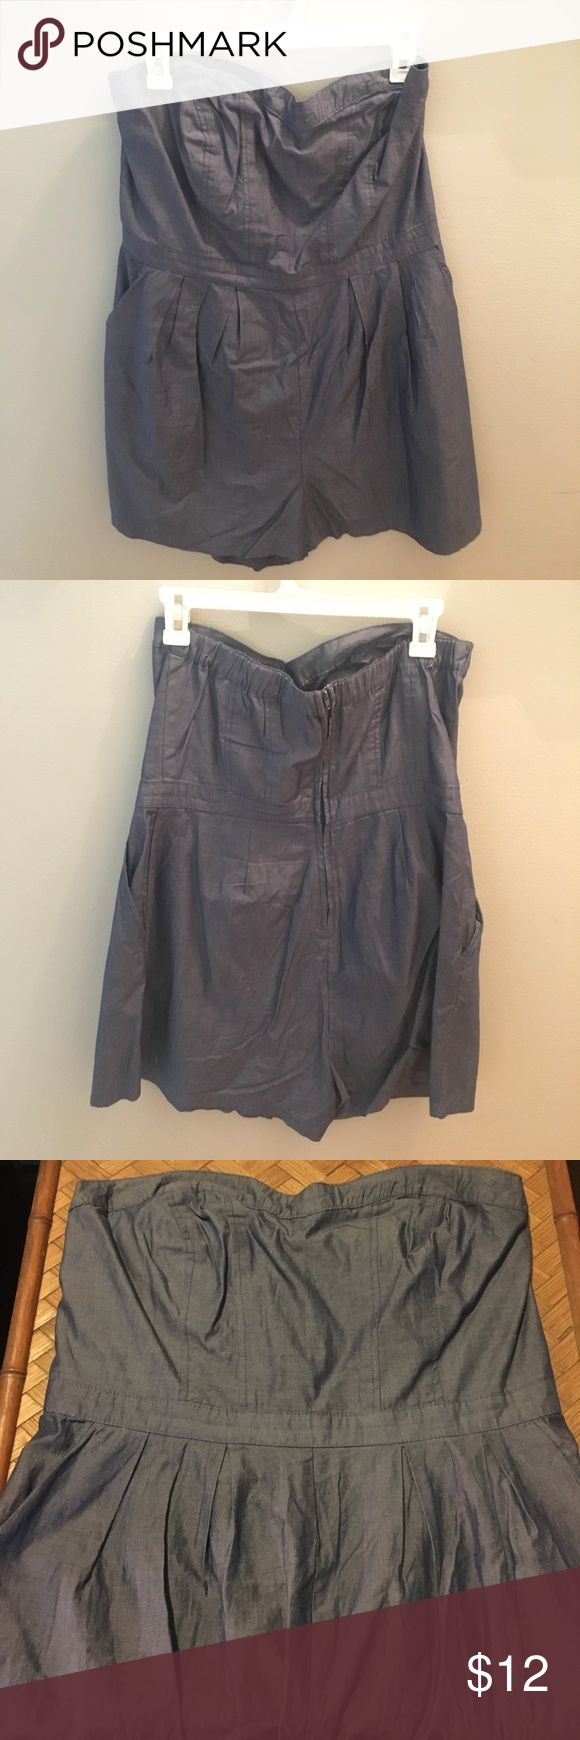 Mossimo supply co Chambray romper Mossimo Supply Co chambray romper. Size XL, zipper back 2 side pockets. Great condition like new no defects. Mossimo Supply Co Dresses